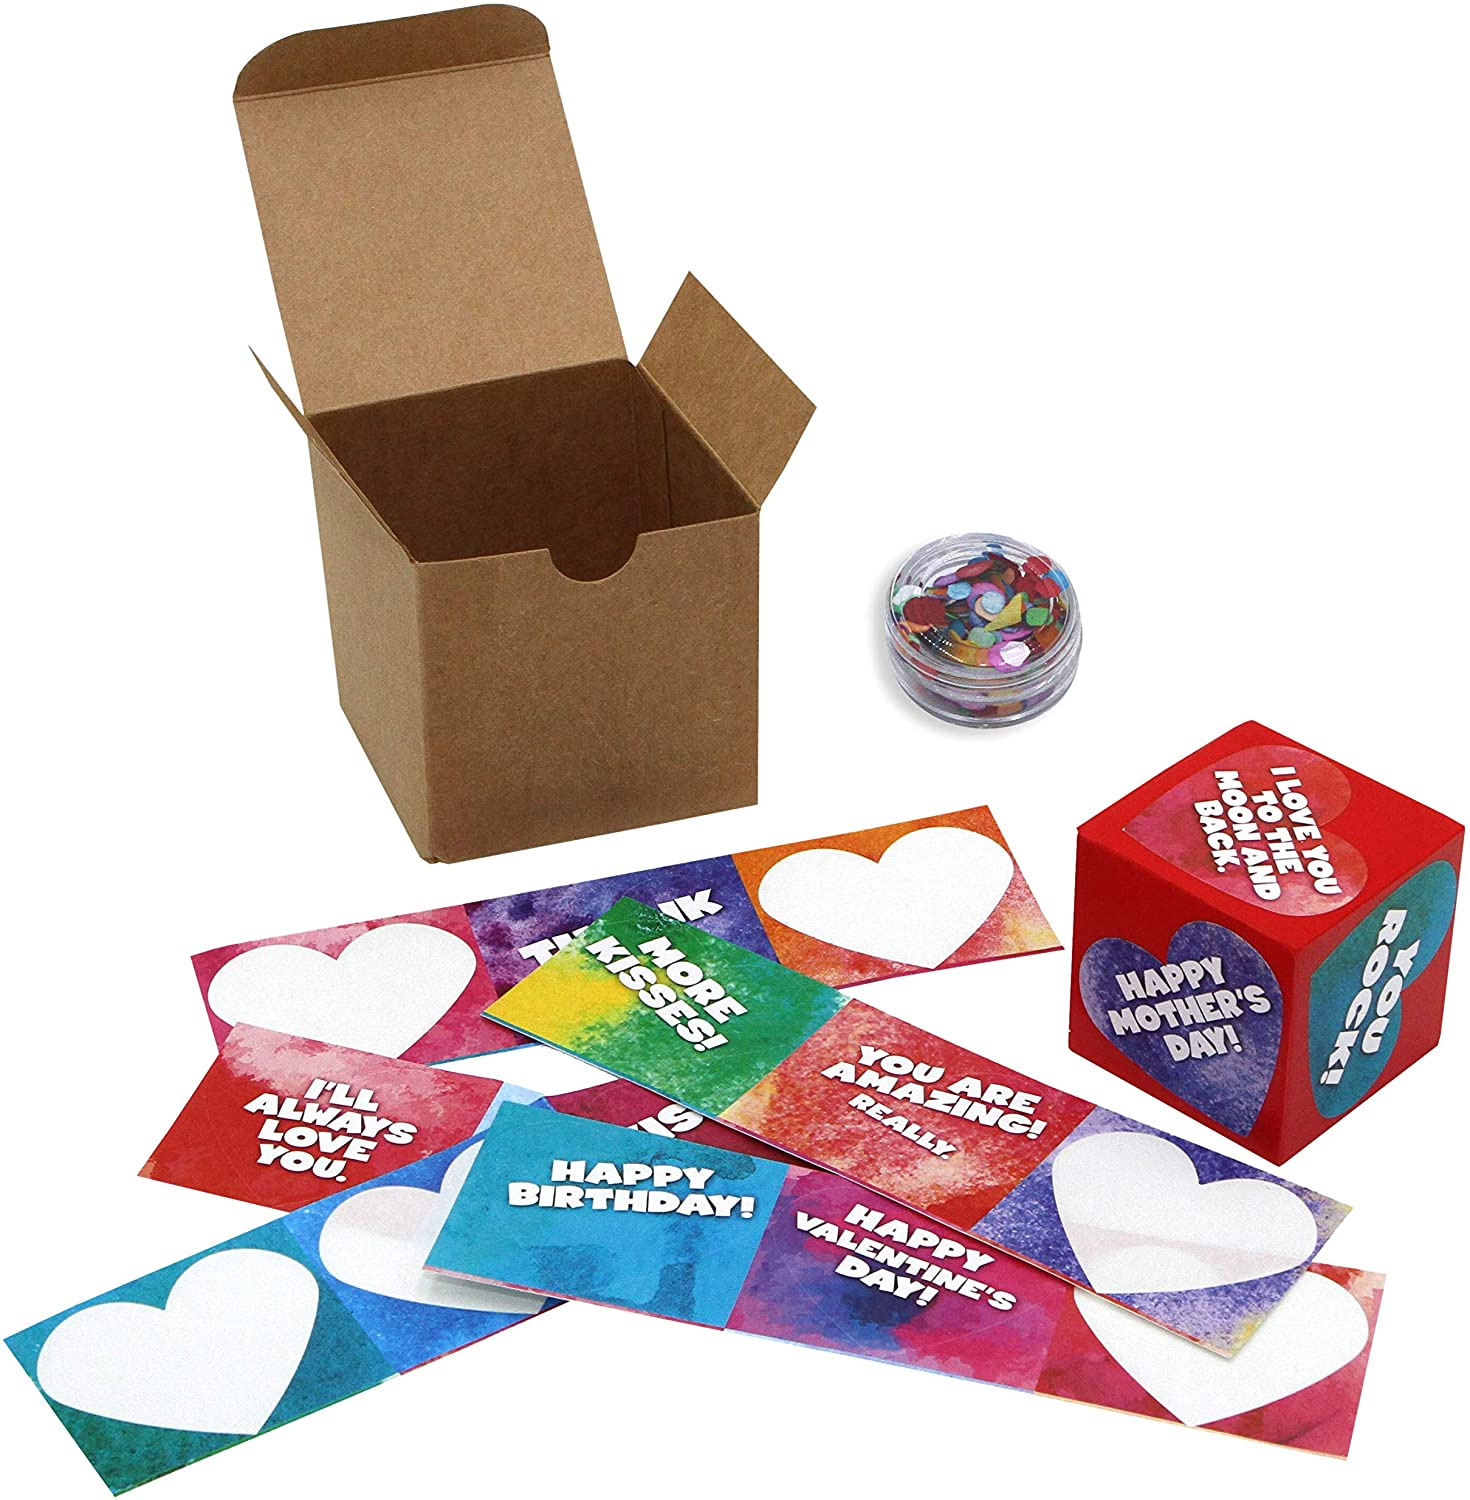 I Love You Qube Gift Set, Peel and Stick to Create Your Own Personalized Gift, Heartfelt DIY Mother's Day, Birthday, and Thank You Gifts for Mom and Grandma from Kids (Red)